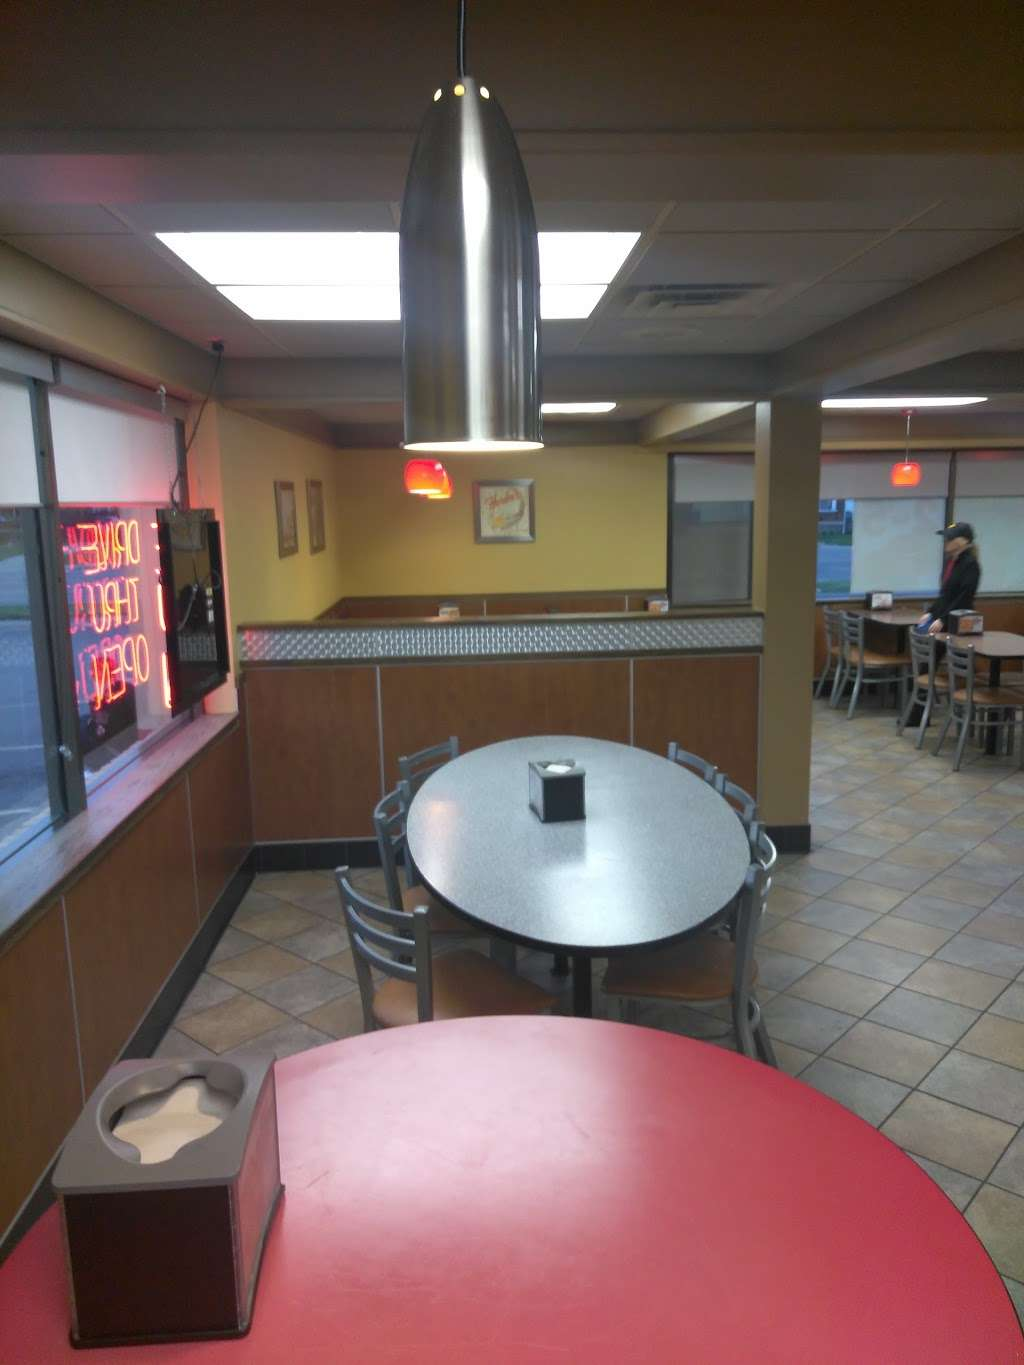 Hardees - restaurant  | Photo 10 of 10 | Address: 4401 E 10th St, Indianapolis, IN 46201, USA | Phone: (317) 359-4655